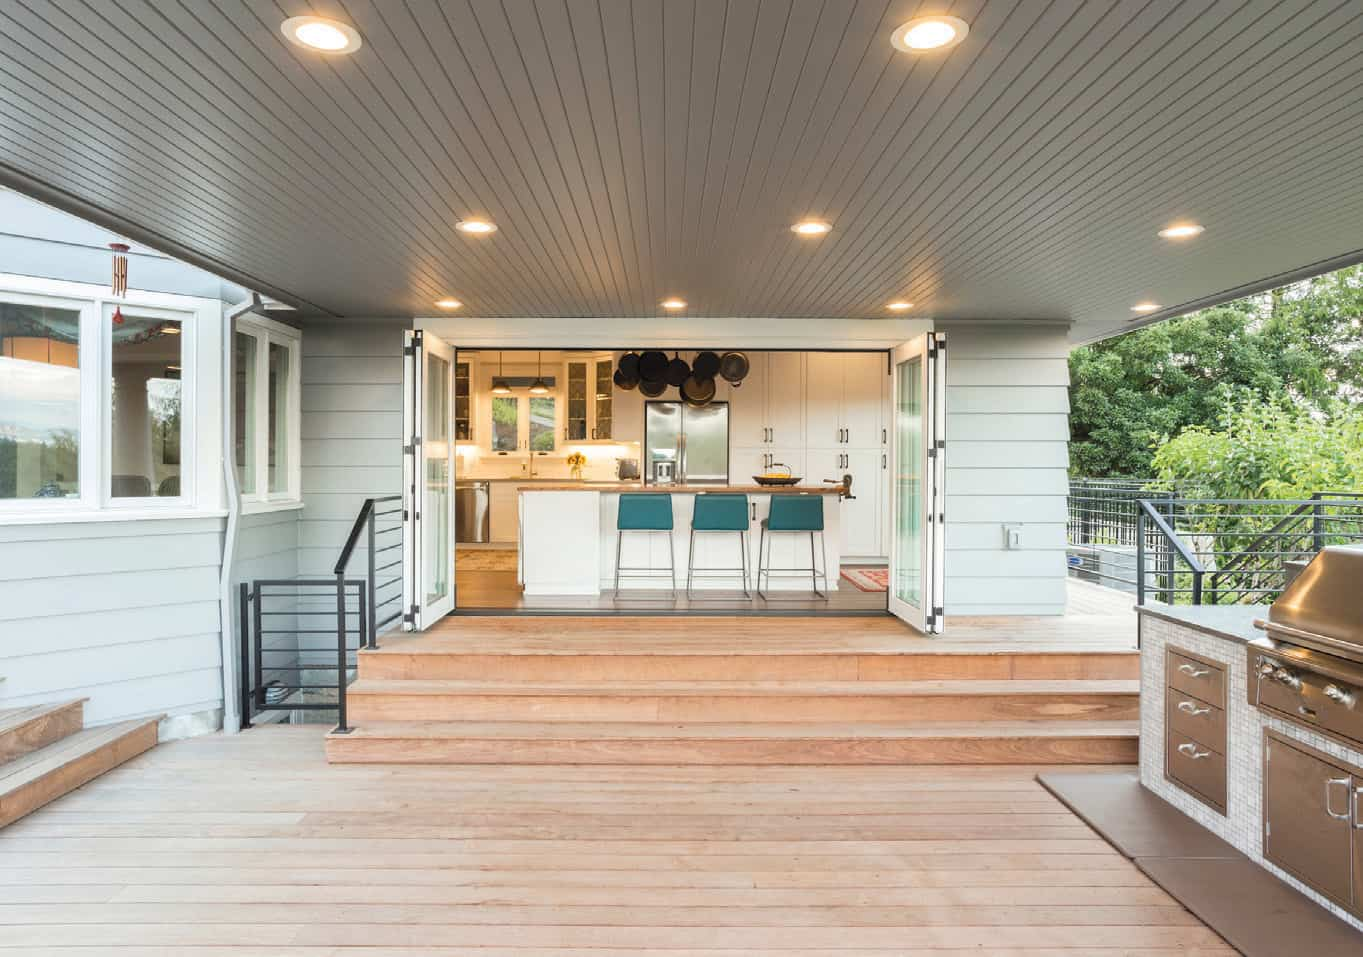 Two sets of wide La Cantina doors let the kitchen open out onto a spacious portico.